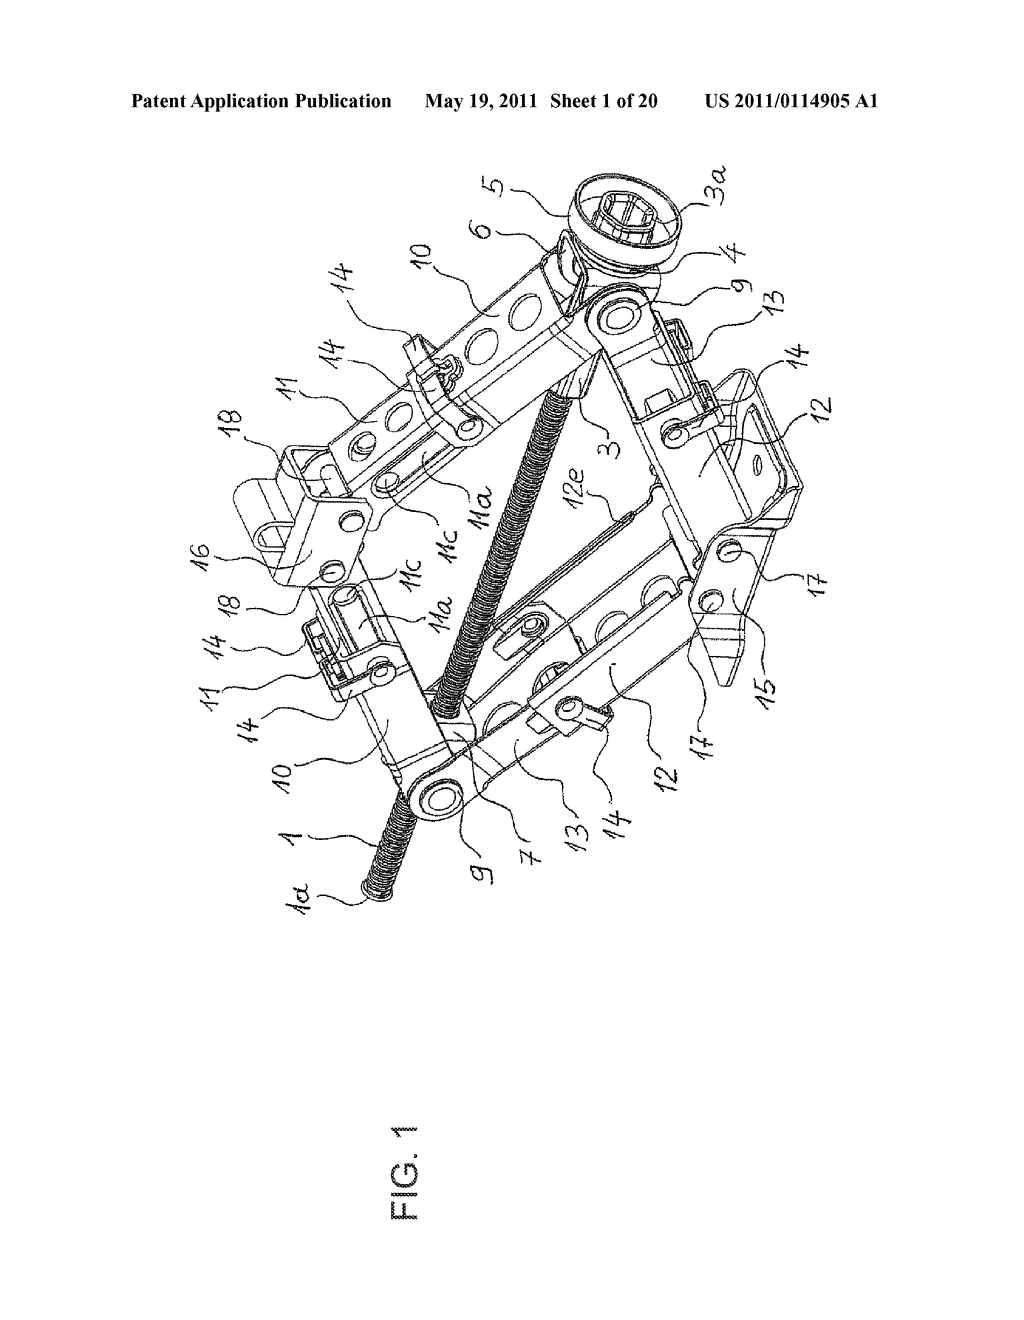 car jack schematic car jack patent wiring diagrams Cobra Microphone Wiring schematic telescopically collapsible scissor car jack diagram schematic hydraulic car jack schematic telescopically collapsible scissor car